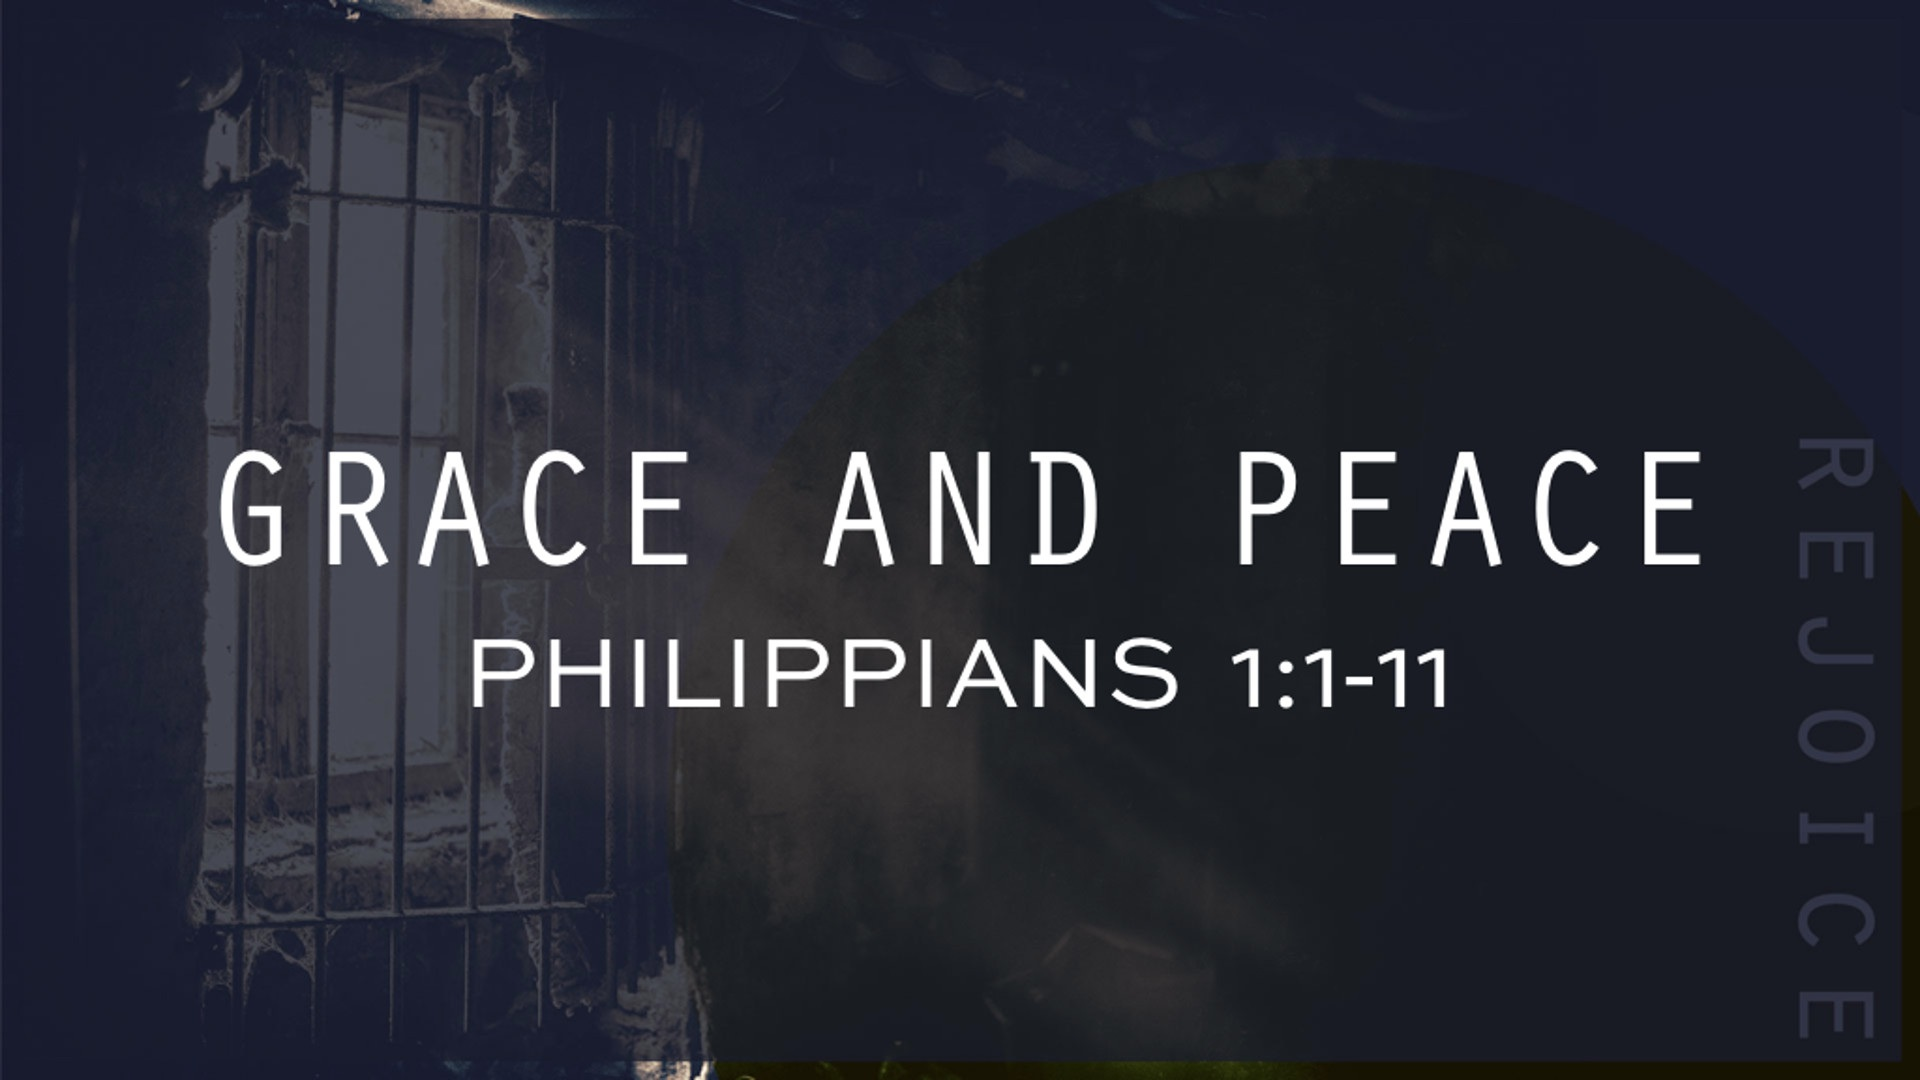 Phil+1.1-11+Grace+and+Peace.jpg